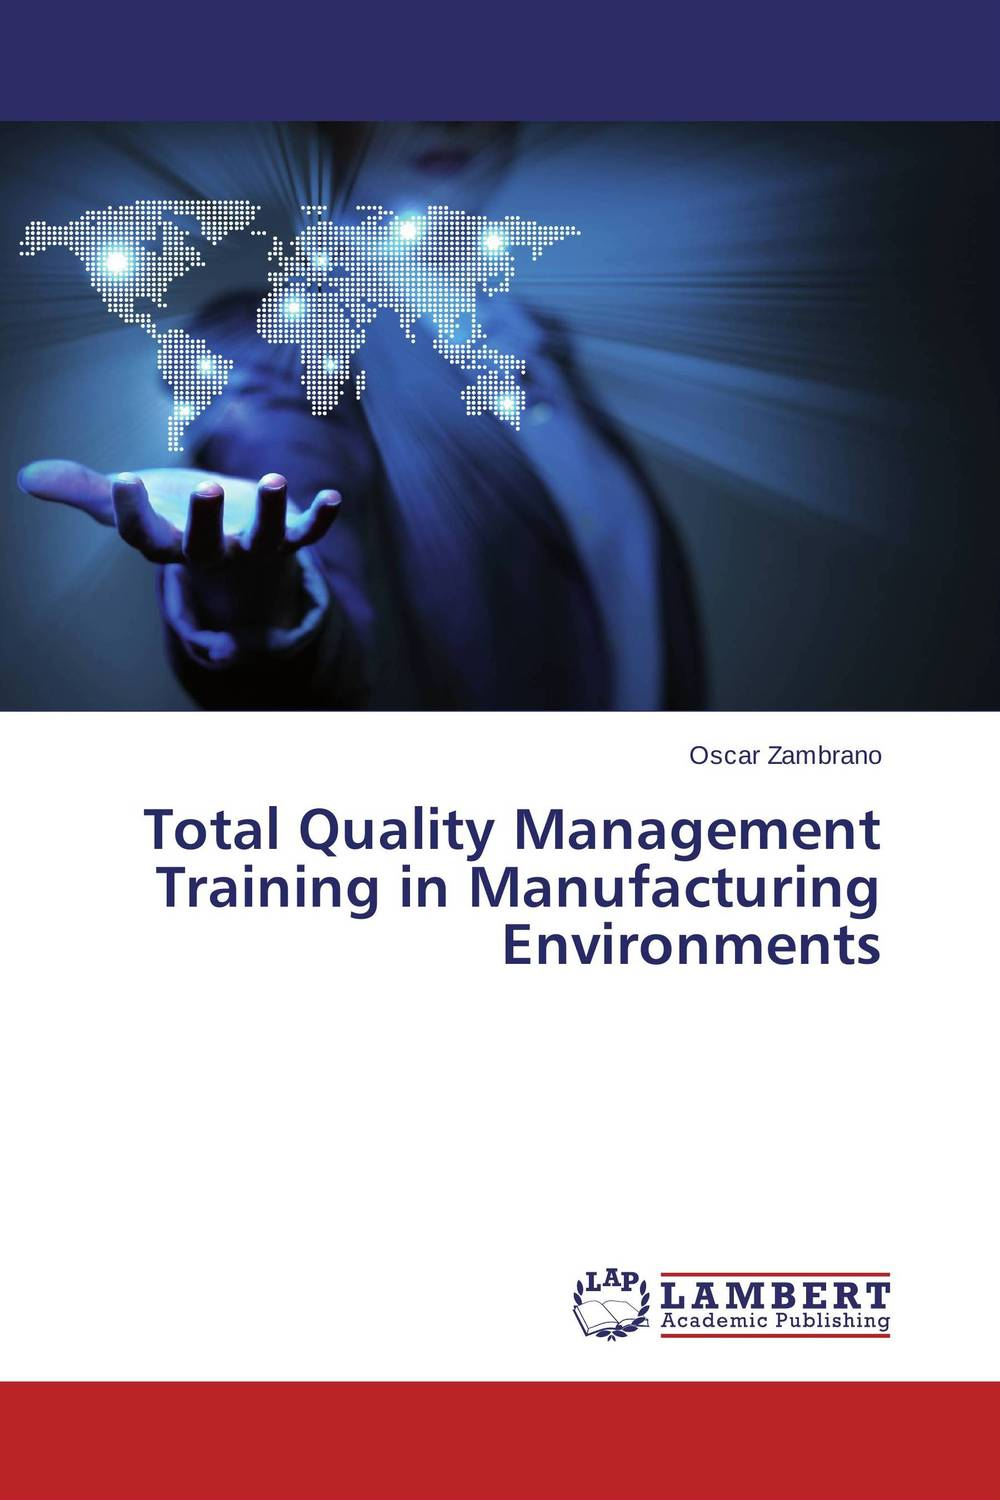 Total Quality Management Training in Manufacturing Environments